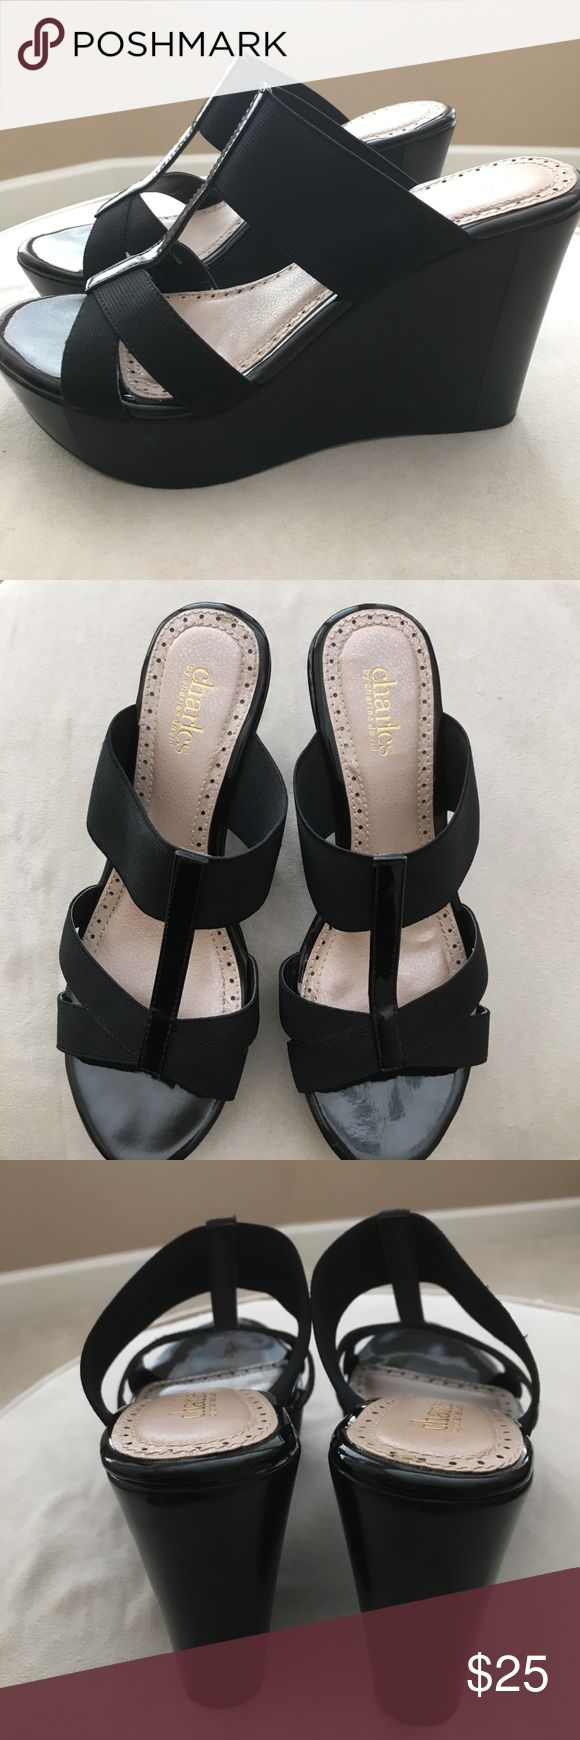 """Charles by Charles David Riddle Wedge Sandals Practically new, barely worn Charles by Charles David black """"Riddle"""" wedge sandals.  Size 7 Charles David Shoes Wedges"""